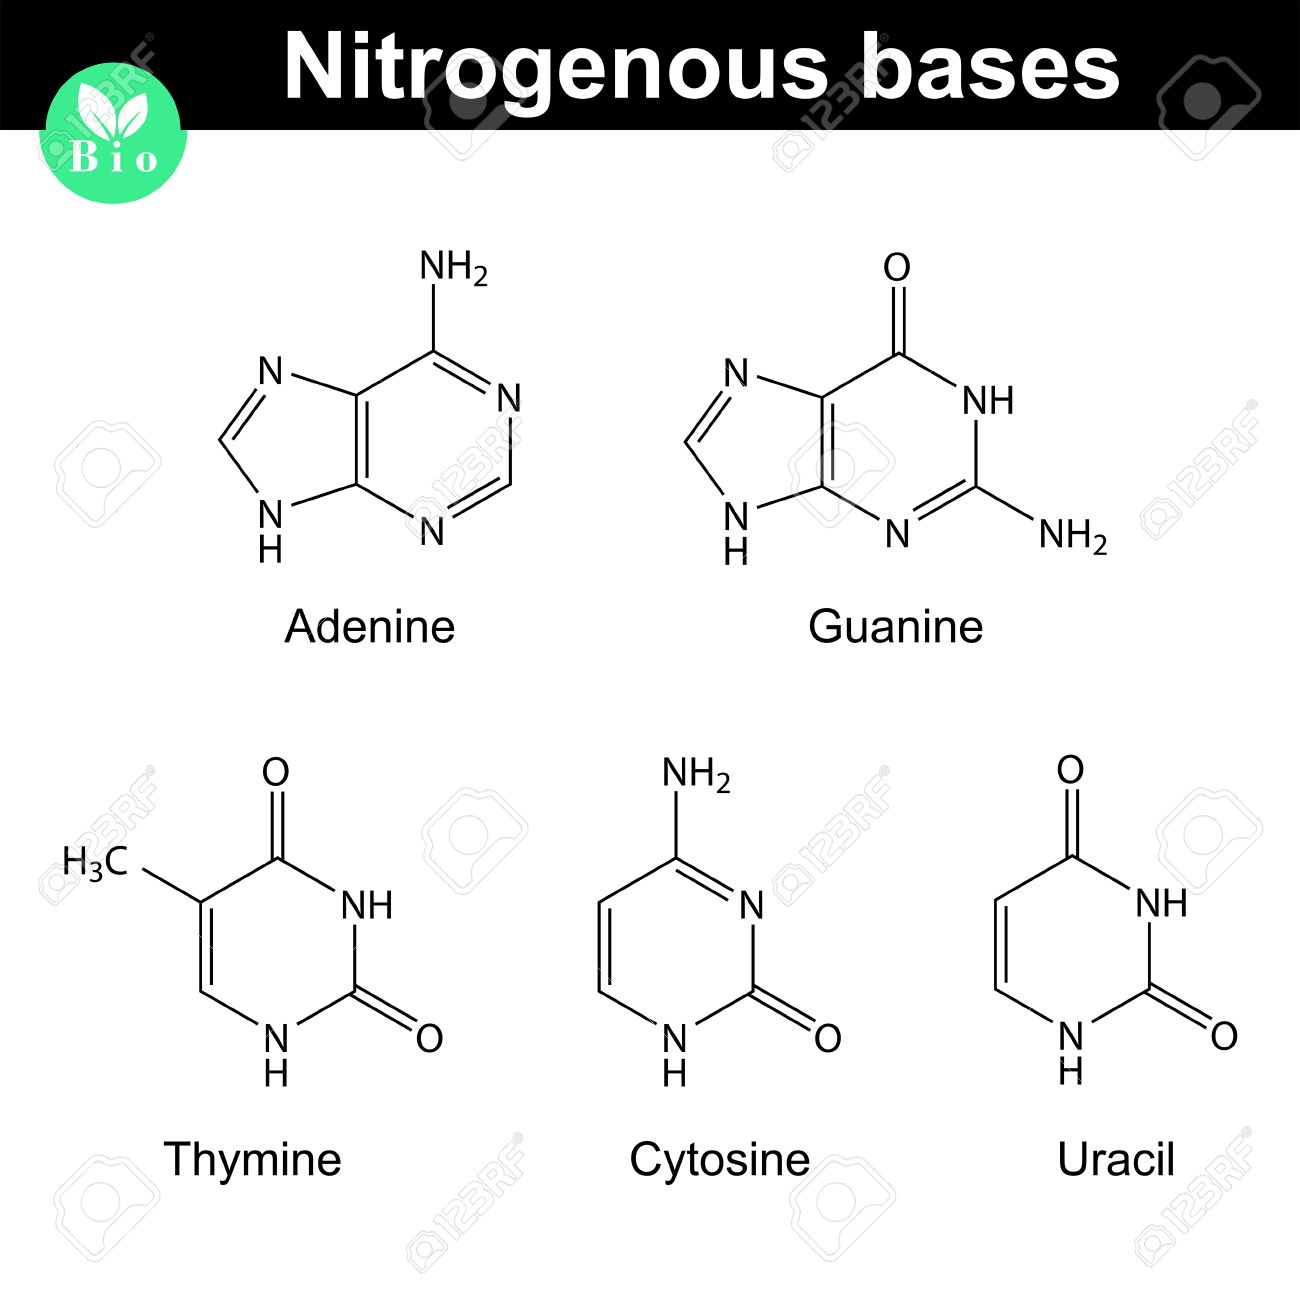 hight resolution of nitrogenous bases molecular structures adenine thymine guanine cytosine and uracil molecules